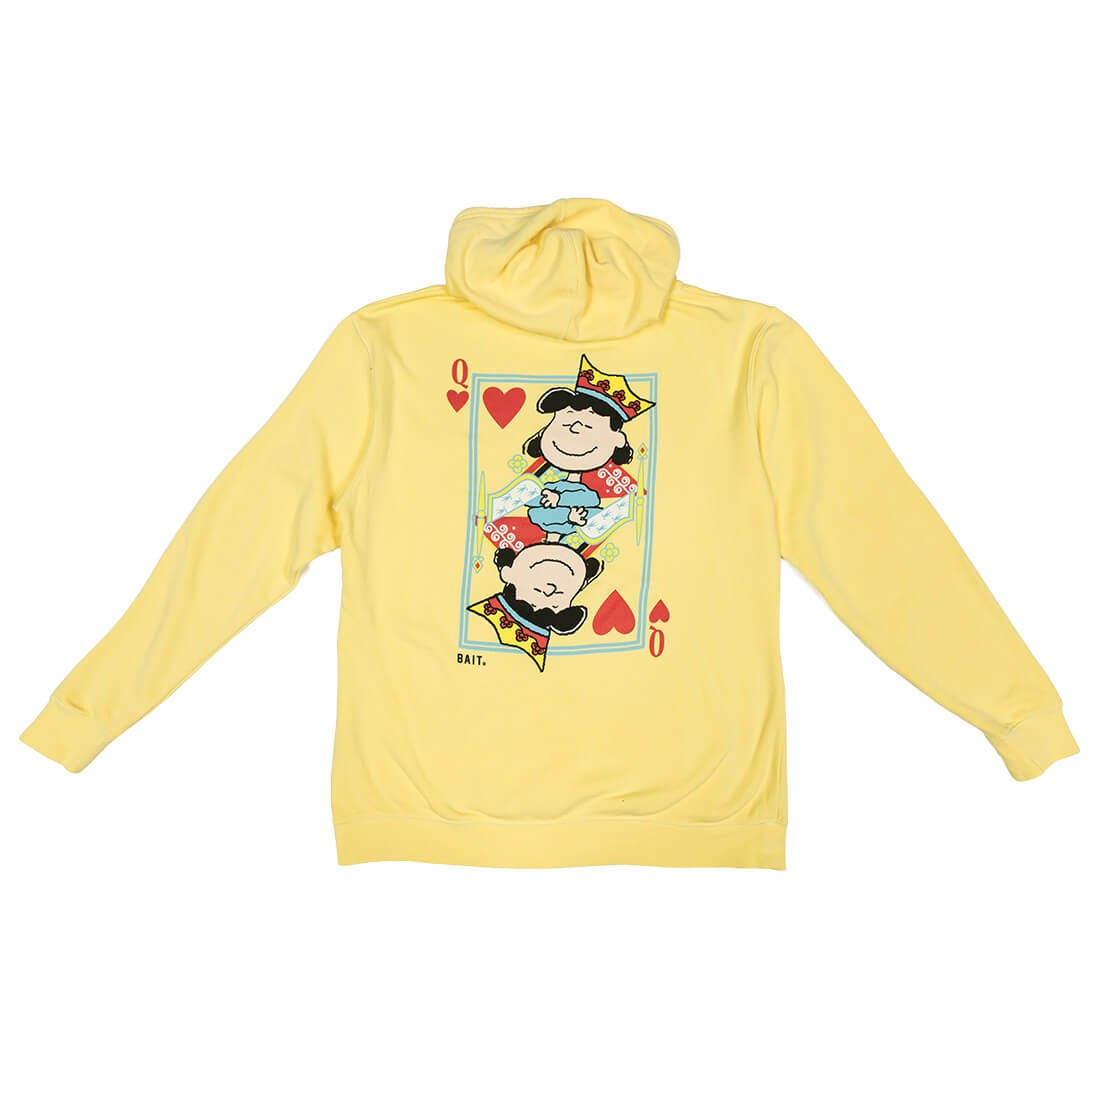 BAIT x Snoopy Women Queen Of Hearts Hoody (yellow)